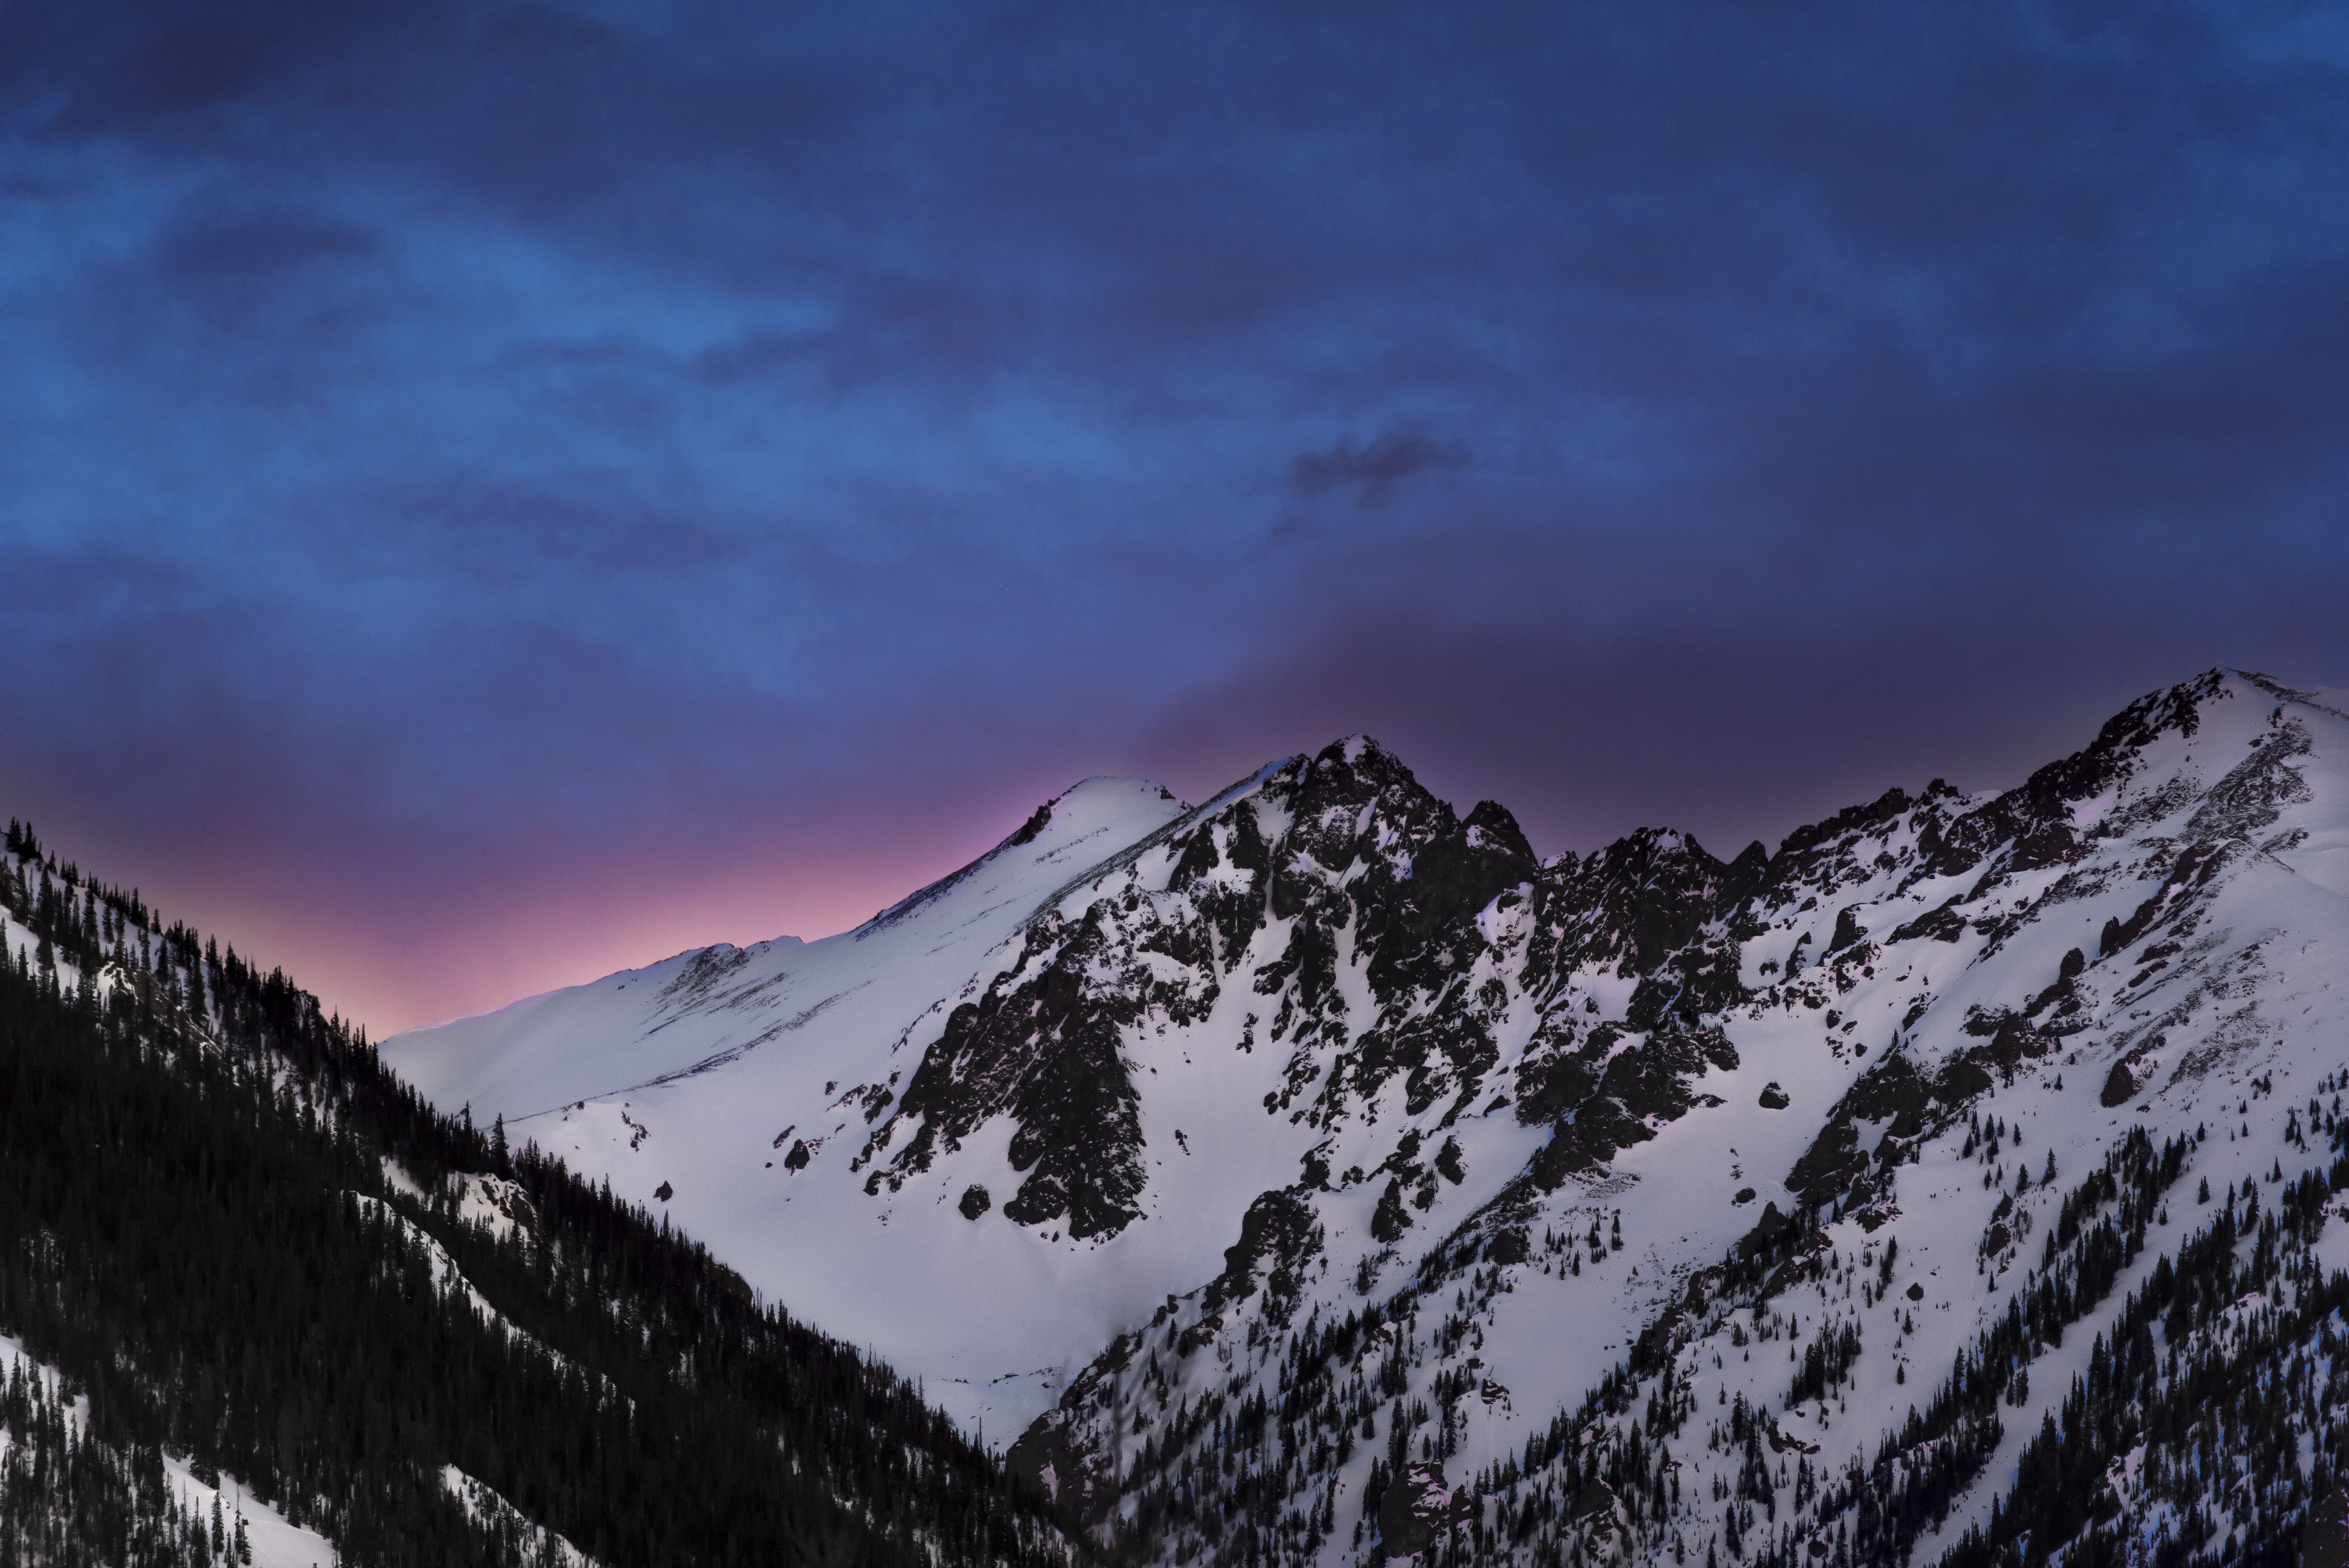 Evening Mountain Sky Snow Twilight Winter 6016x4016